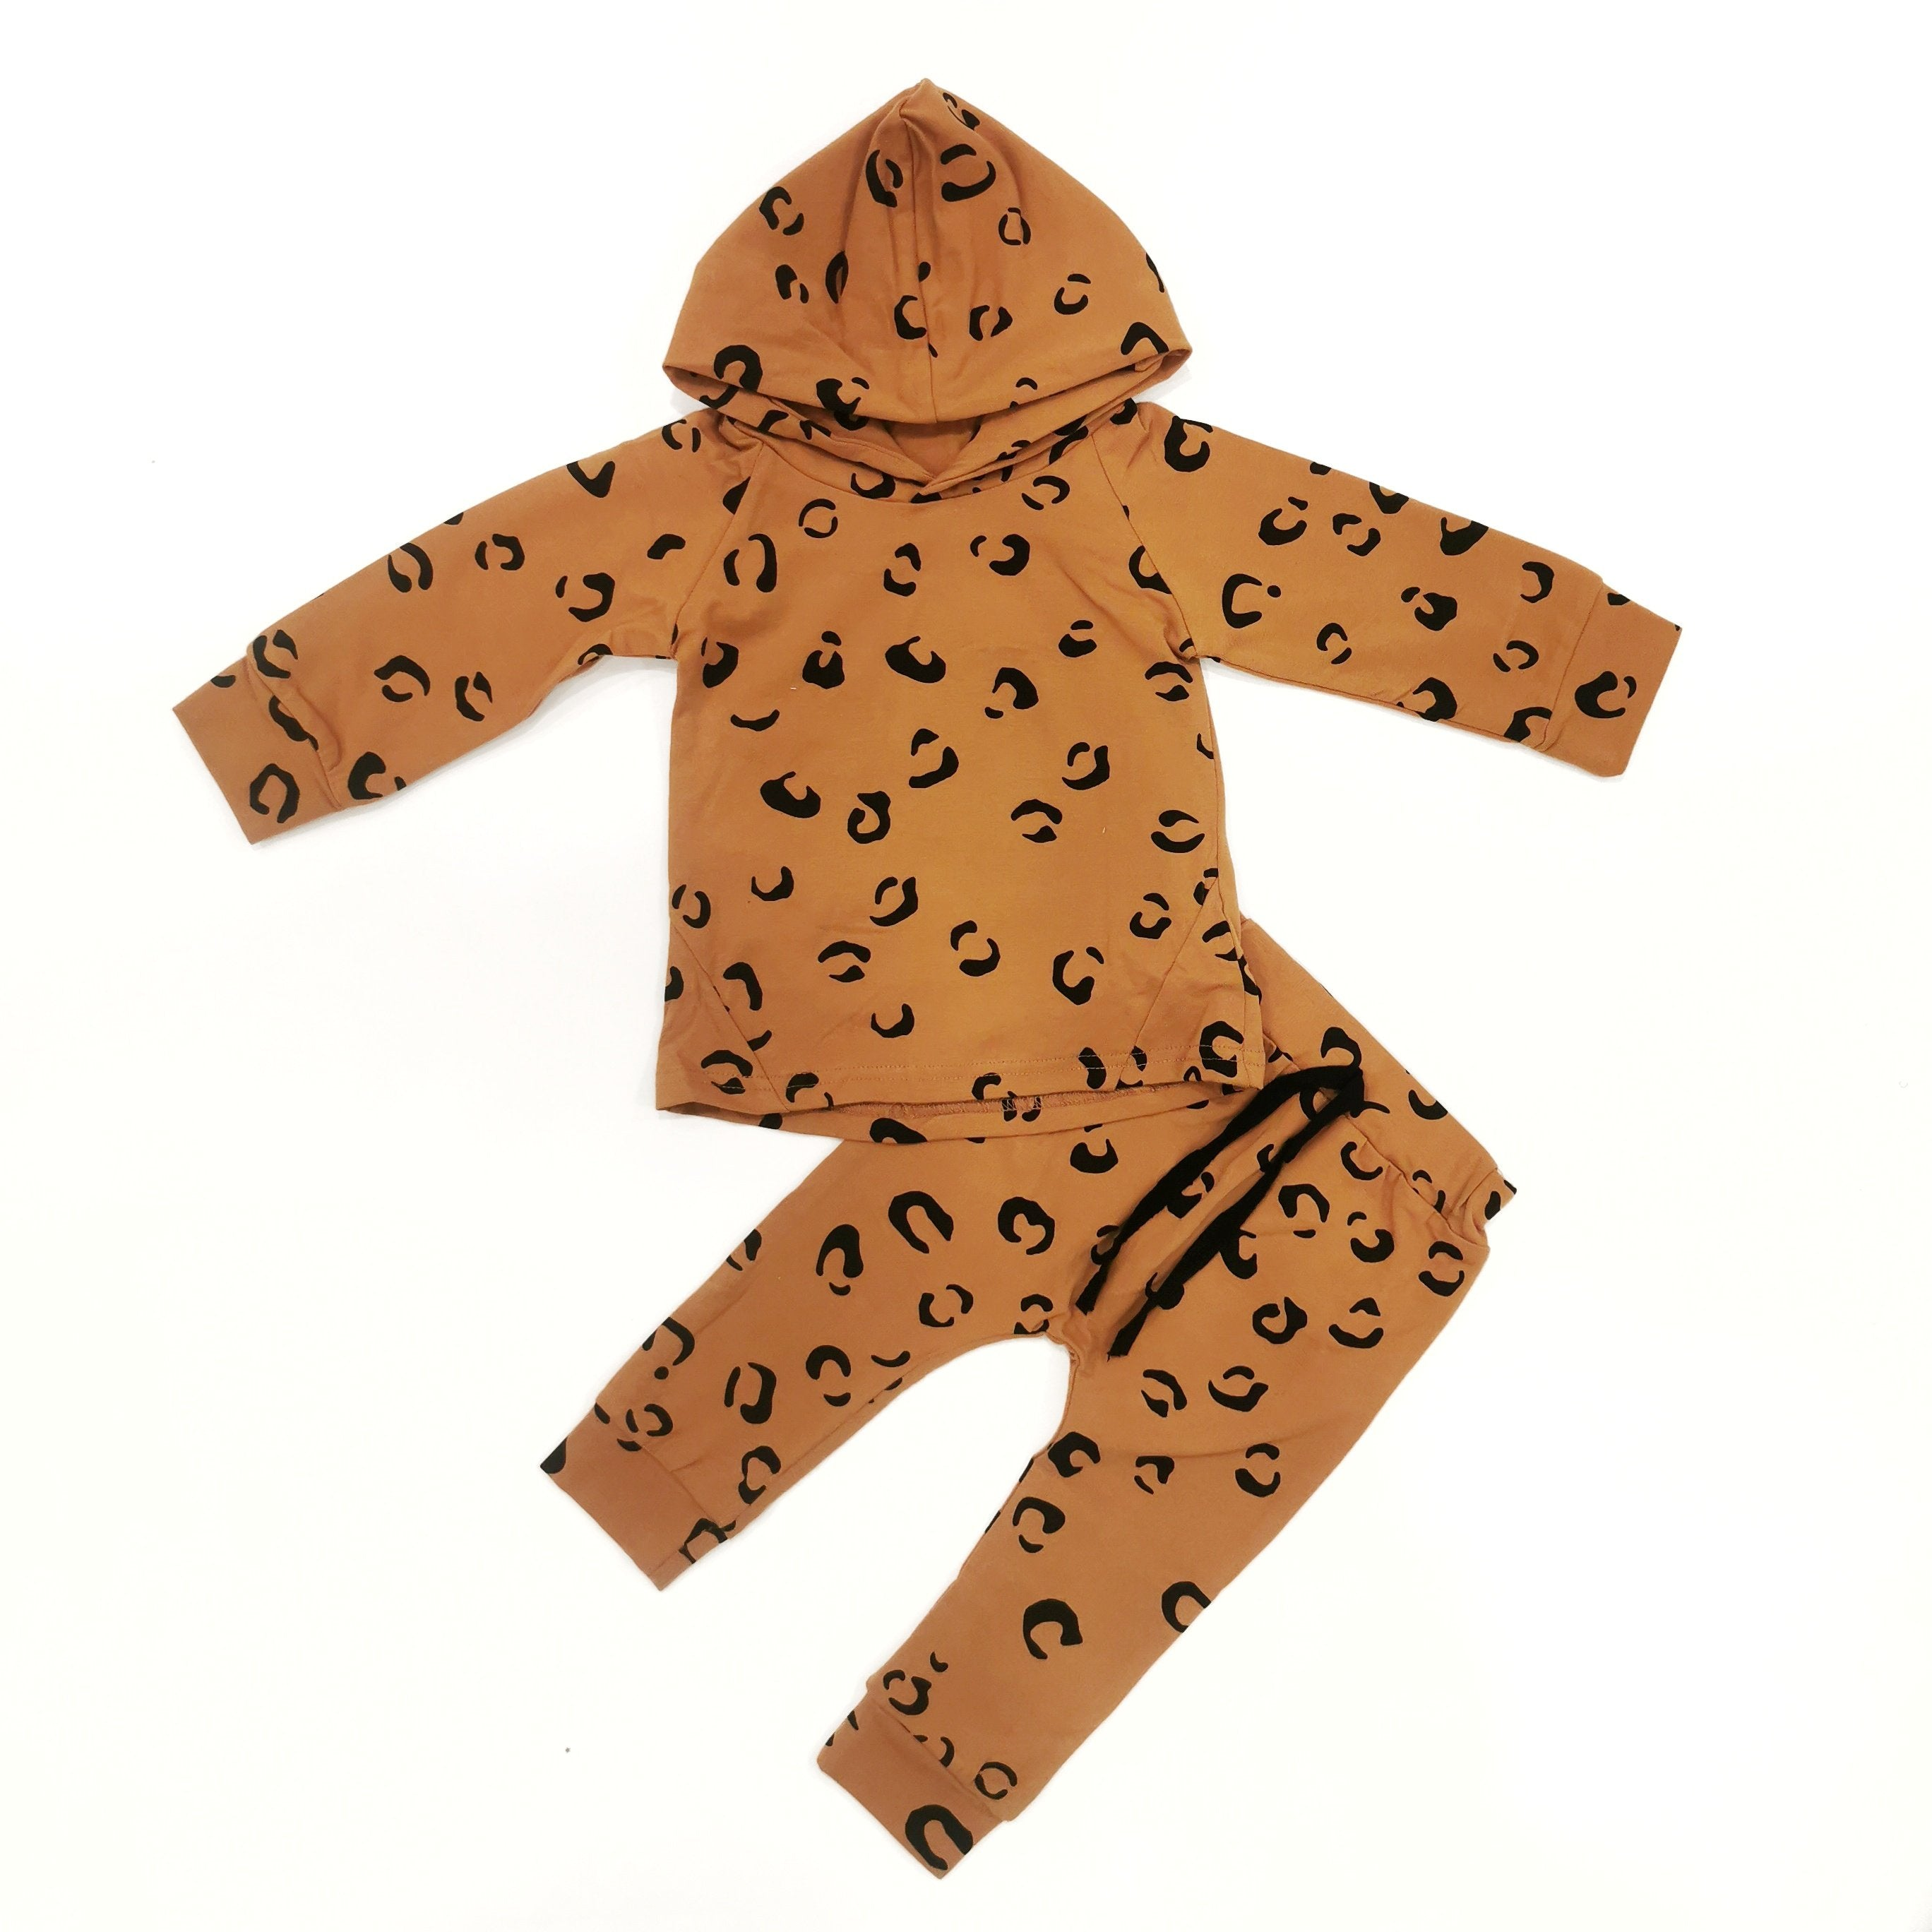 2-Piece Brown Leopard Print Sweatshirt Set